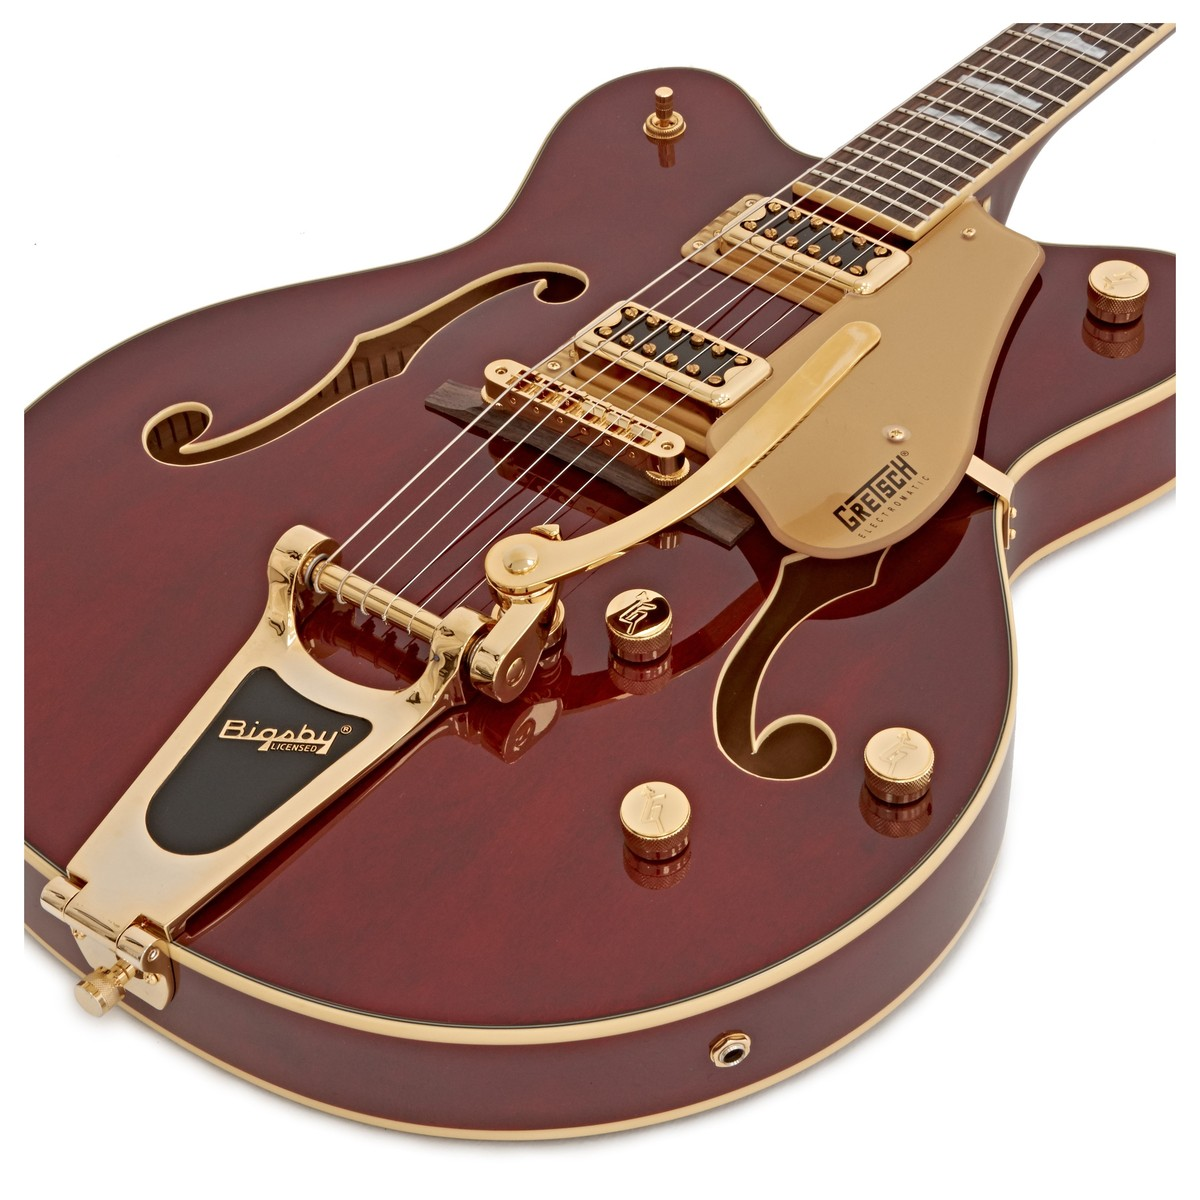 gretsch g5422tg electromatic hollow body guitar walnut stain at